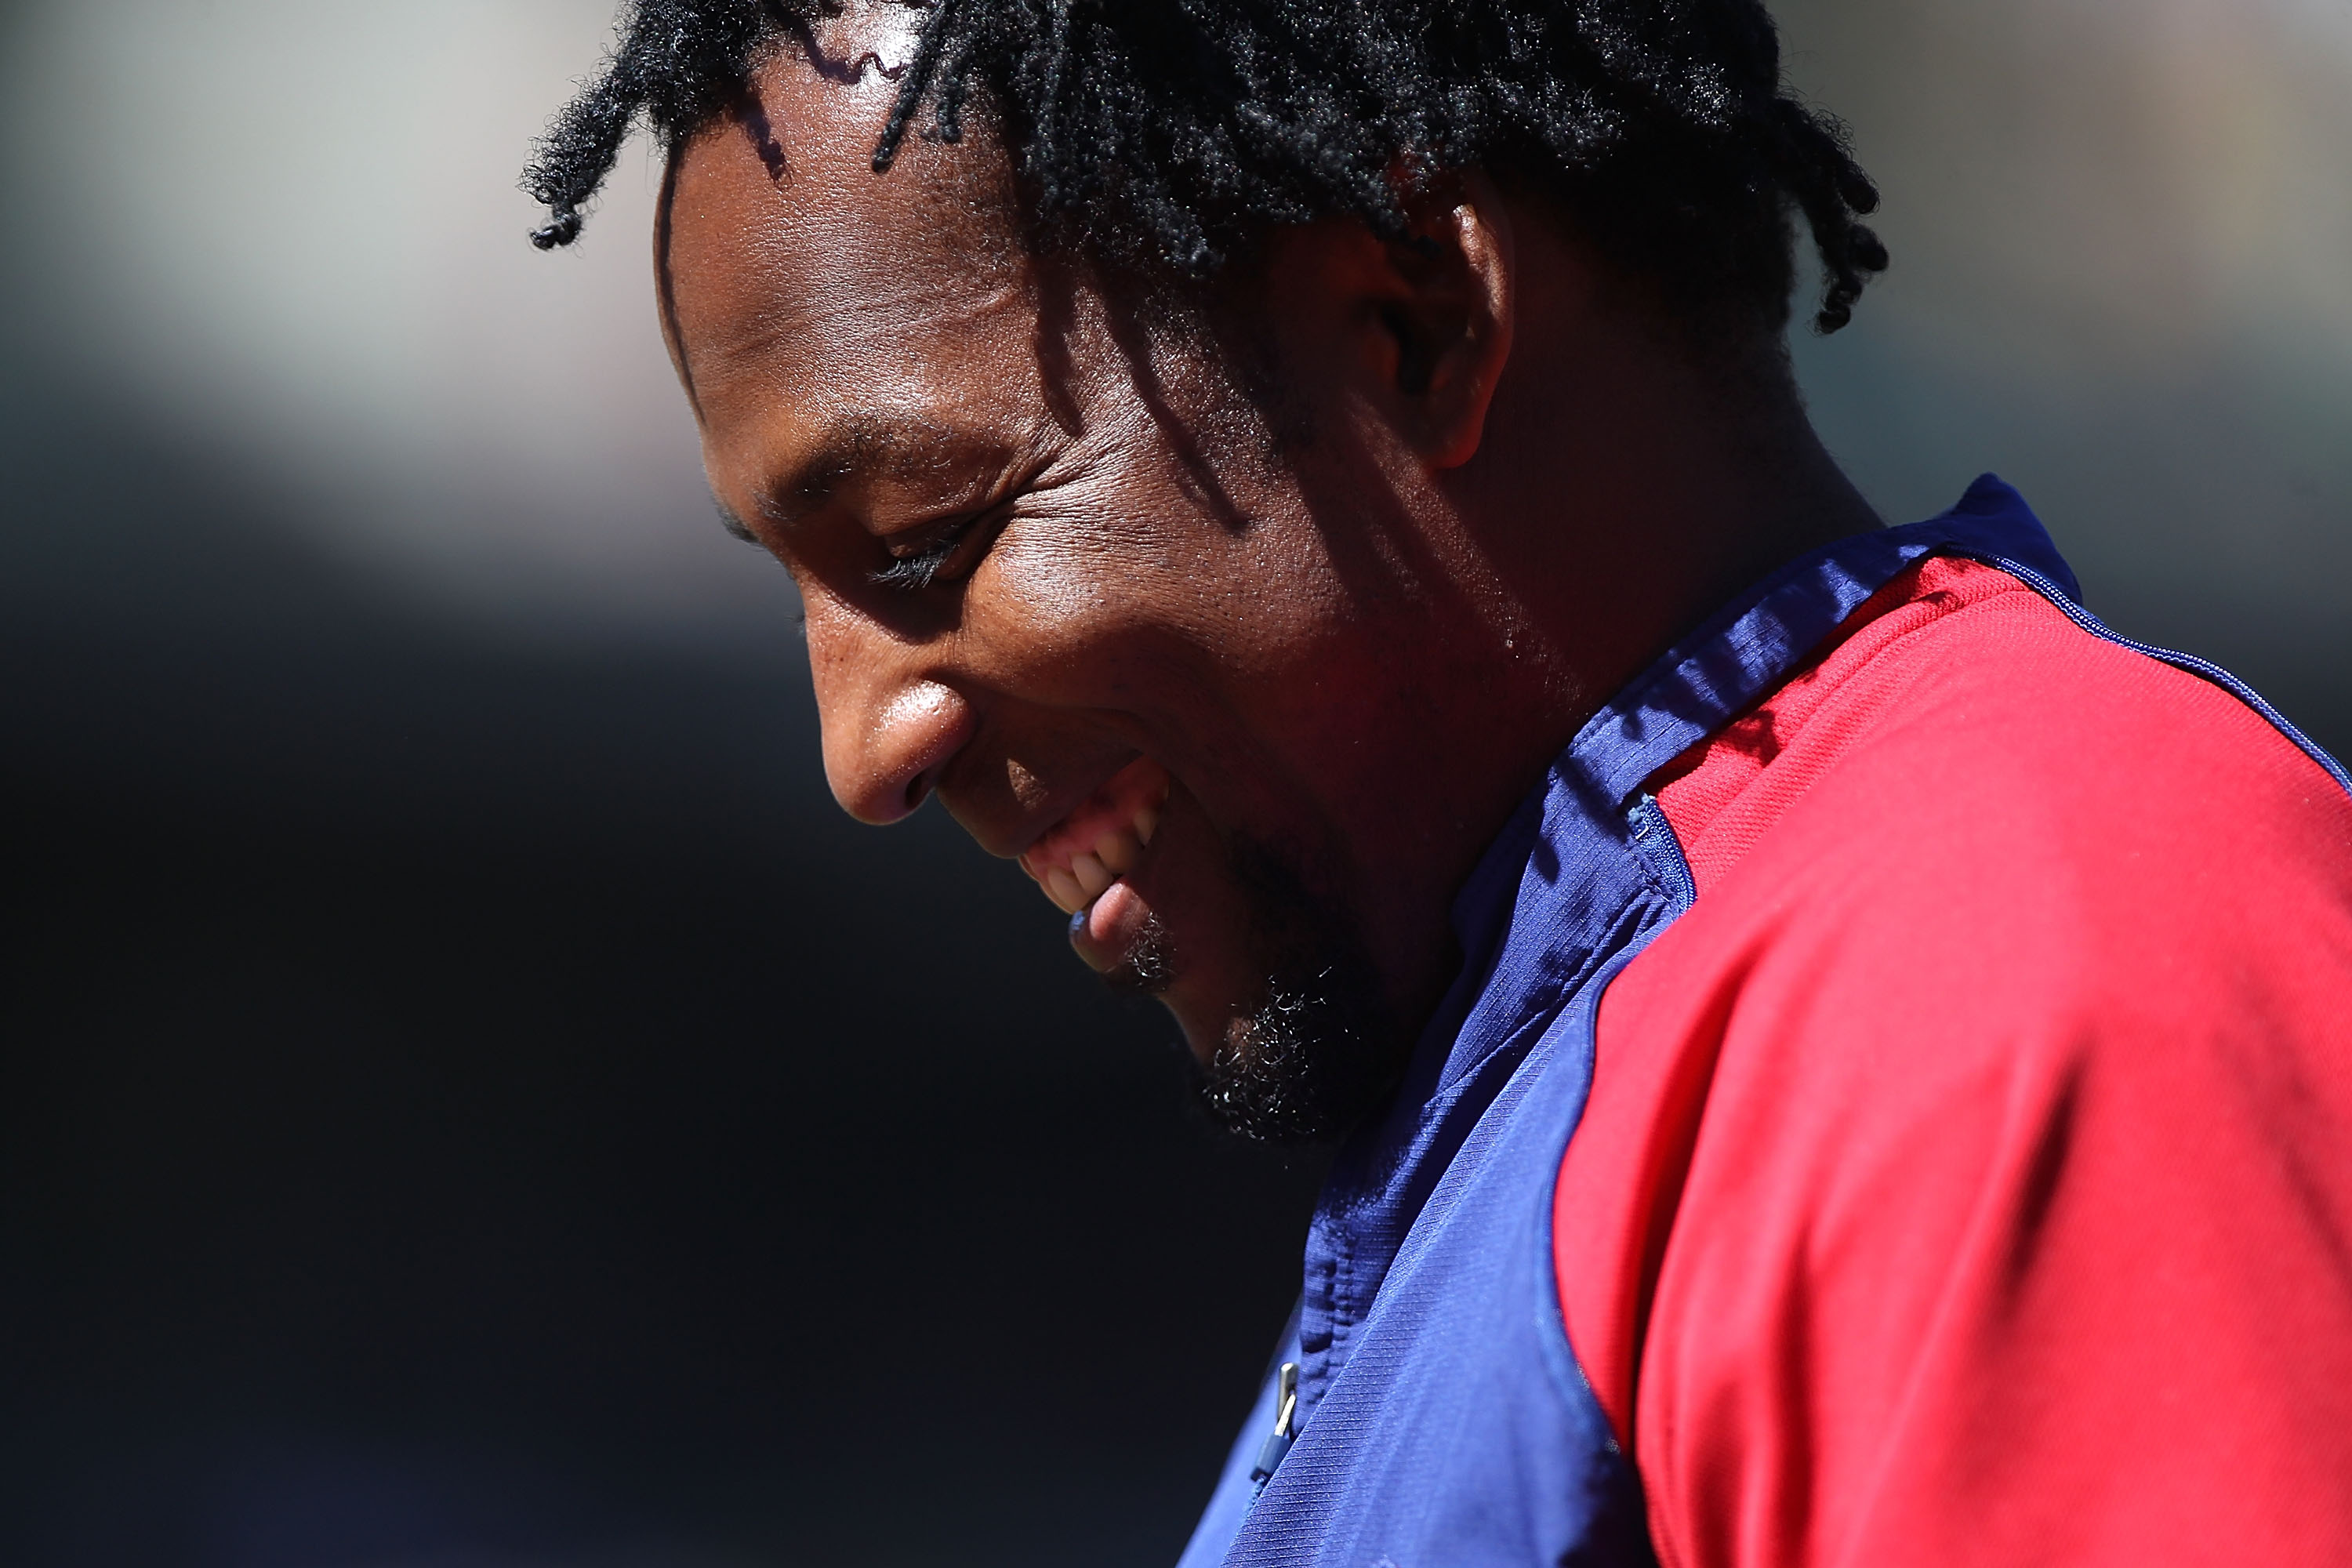 OAKLAND, CA - SEPTEMBER 26:  Vladimir Guerrero #27 of the Texas Rangers looks on against the Oakland Athletics during a Major League Baseball game at the Oakland-Alameda County Coliseum on September 26, 2010 in Oakland, California.  (Photo by Jed Jacobsoh